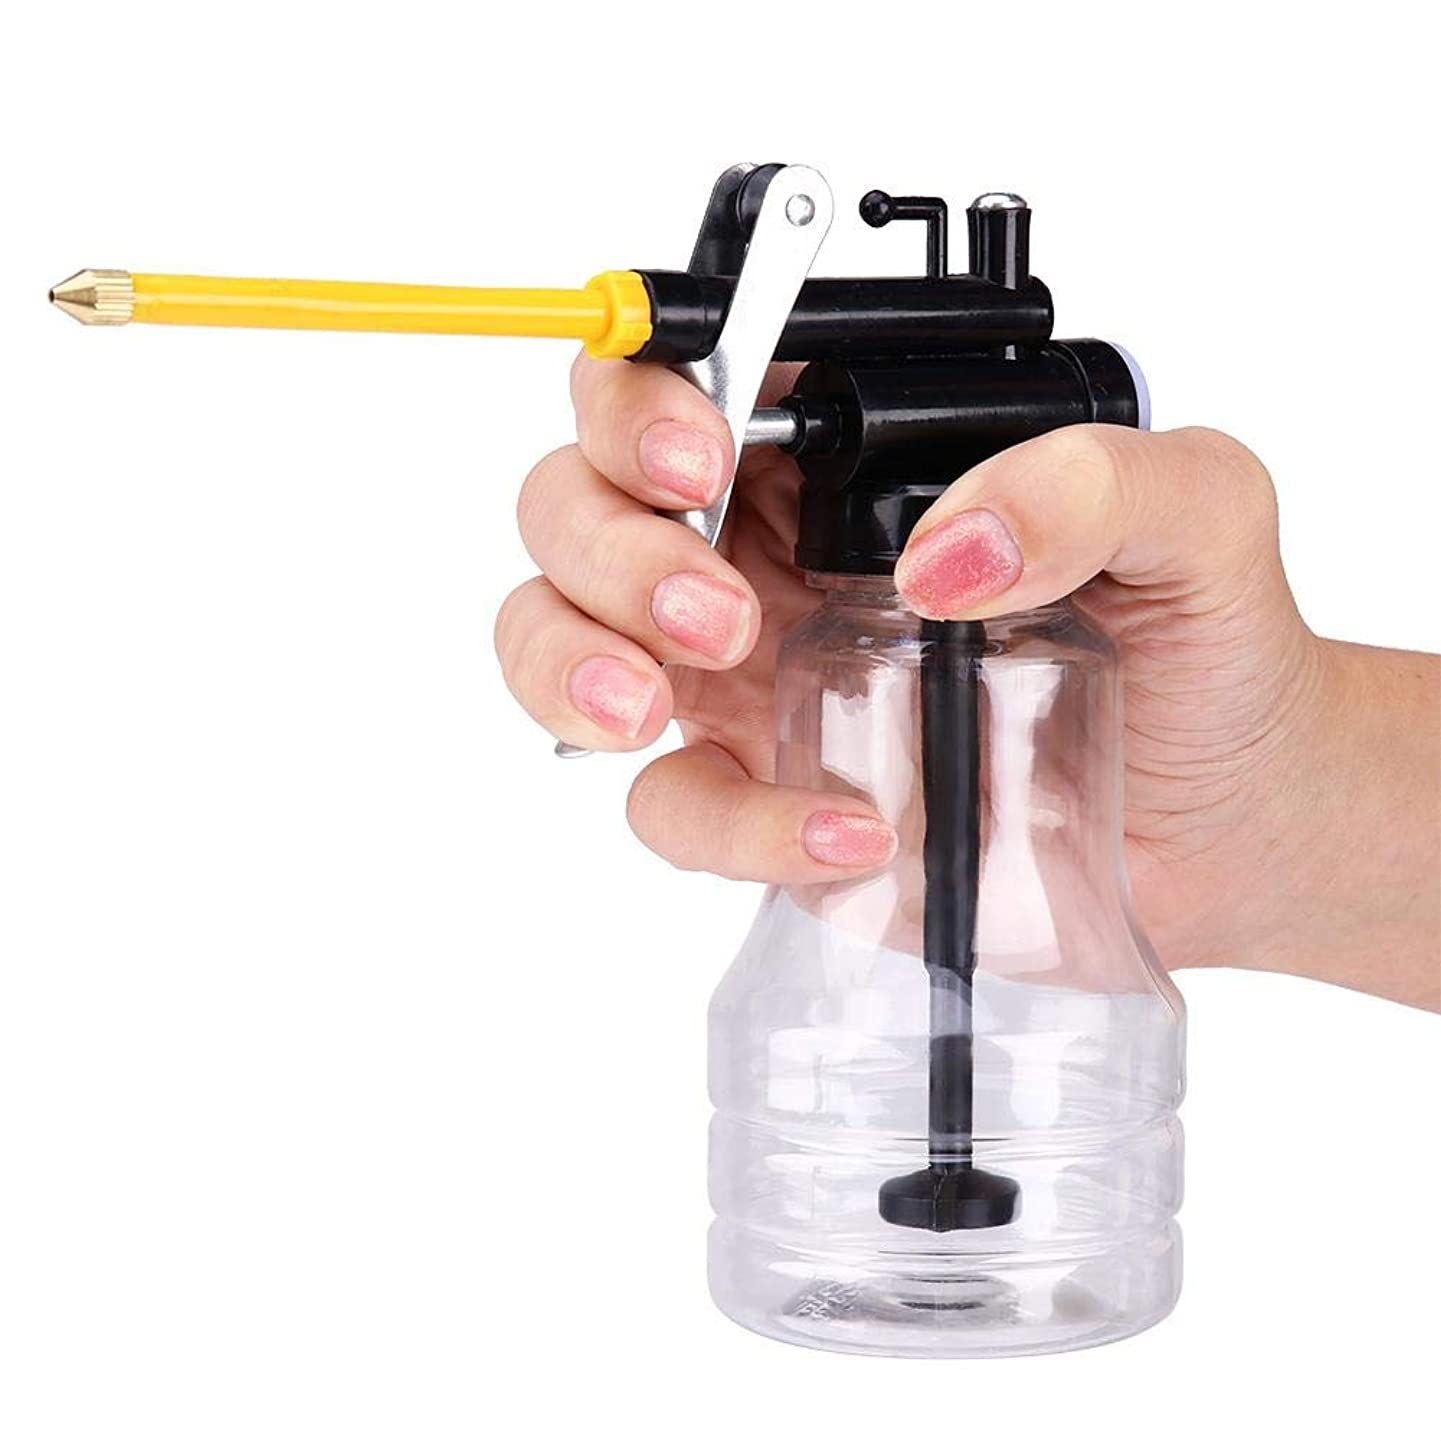 250ML Oil Can Transparent High Pressure Oiler Lubrication Oil Can Bottle Flex Manual Oiling Gun With Rigid Spout Thumb Pump Tool Oiler